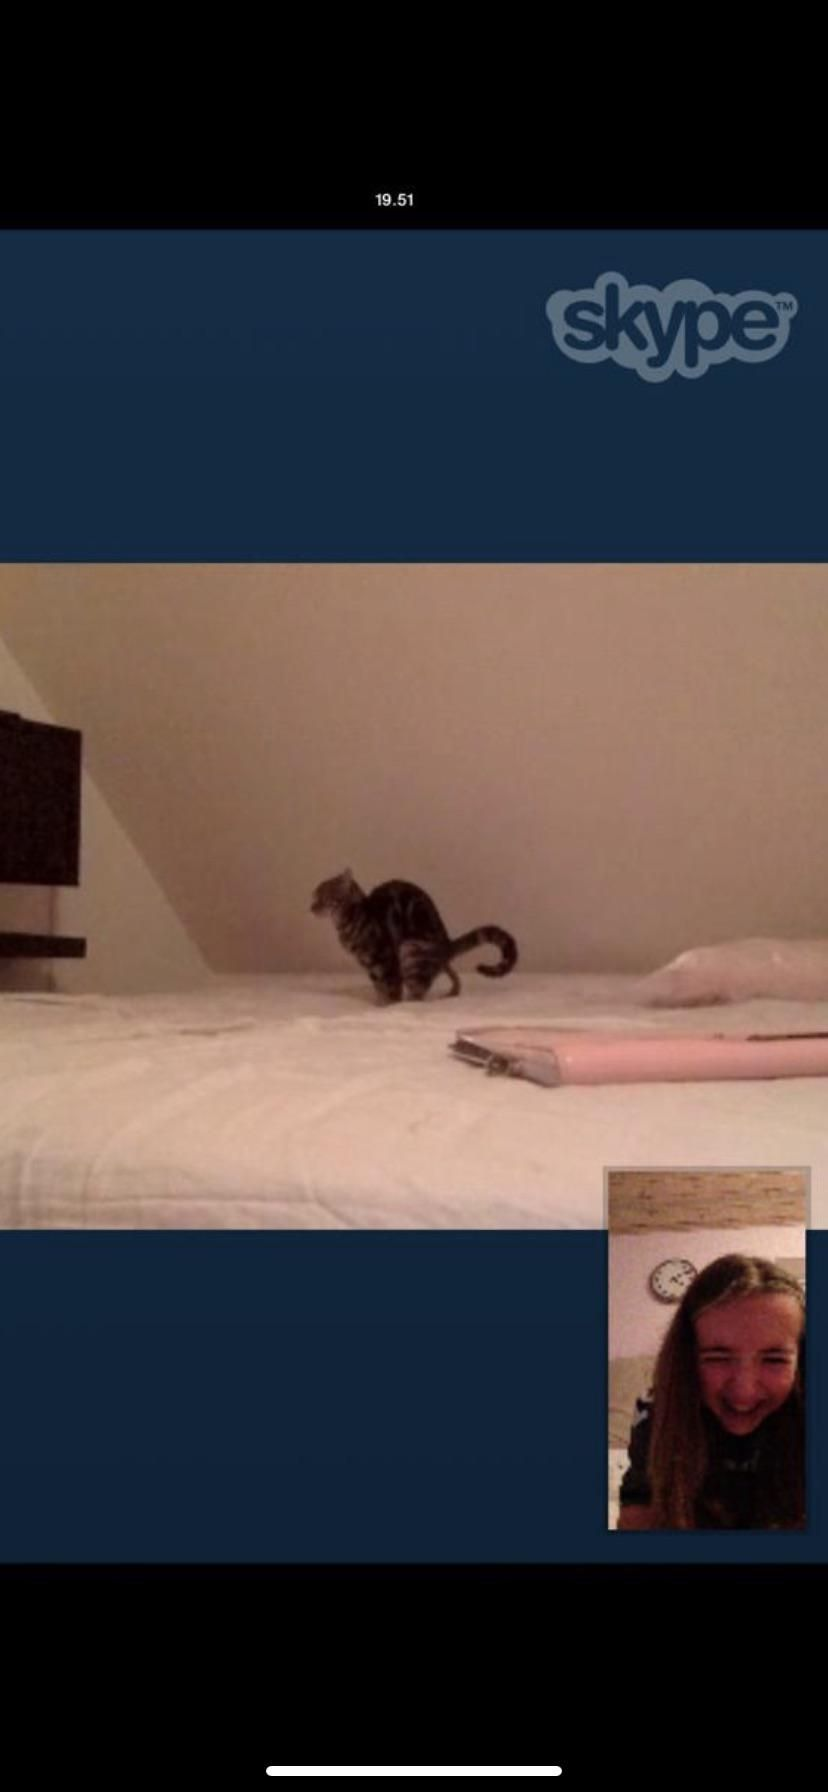 Cat pissed in the bed, went out to get new sheets, and my friend catches this while I'm away...